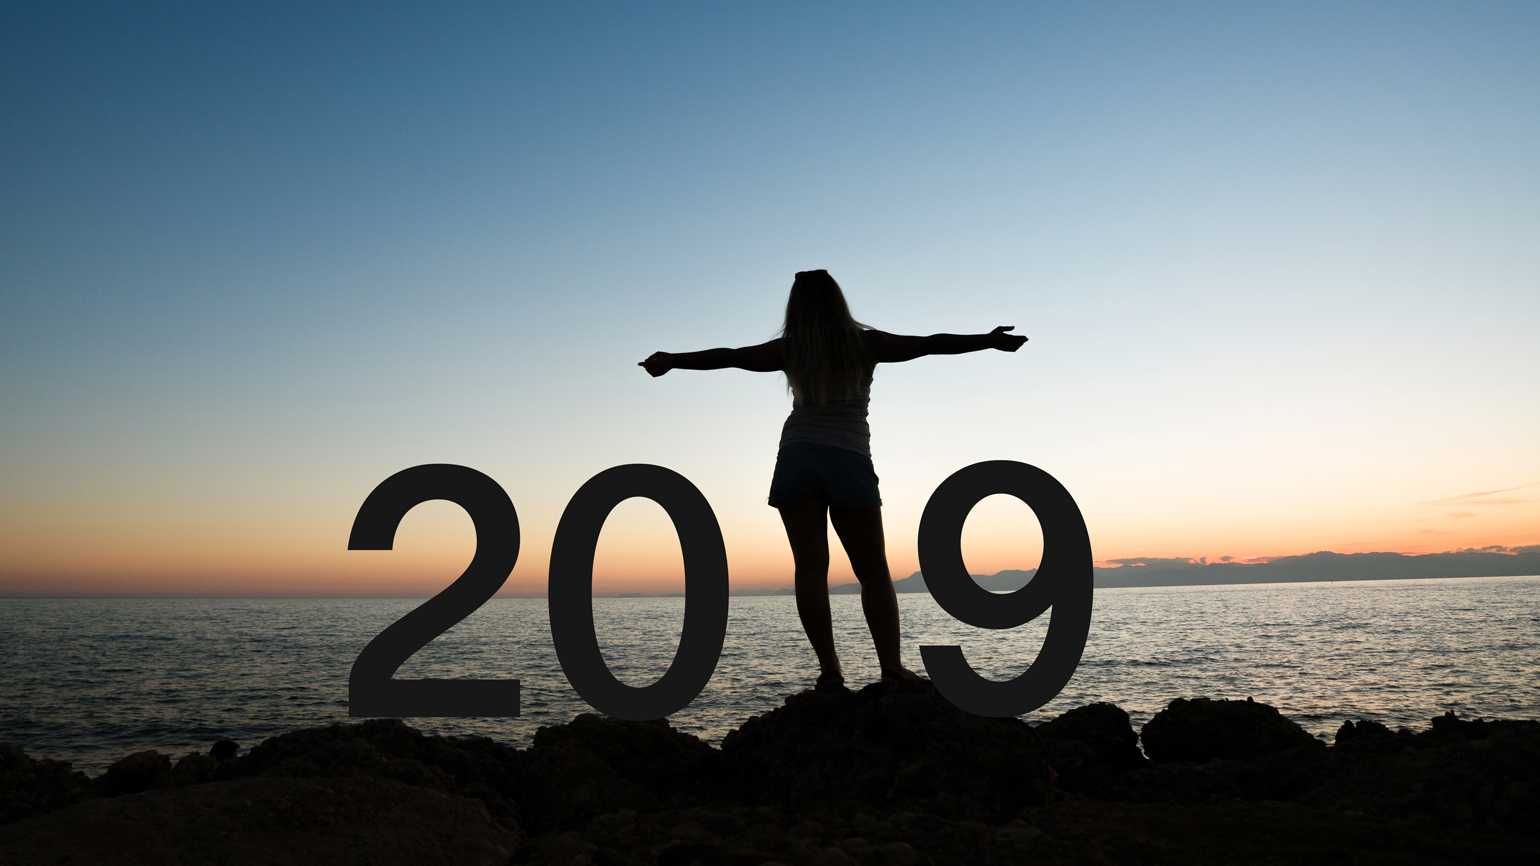 A woman on a beach greets the new year with a hopeful attitude